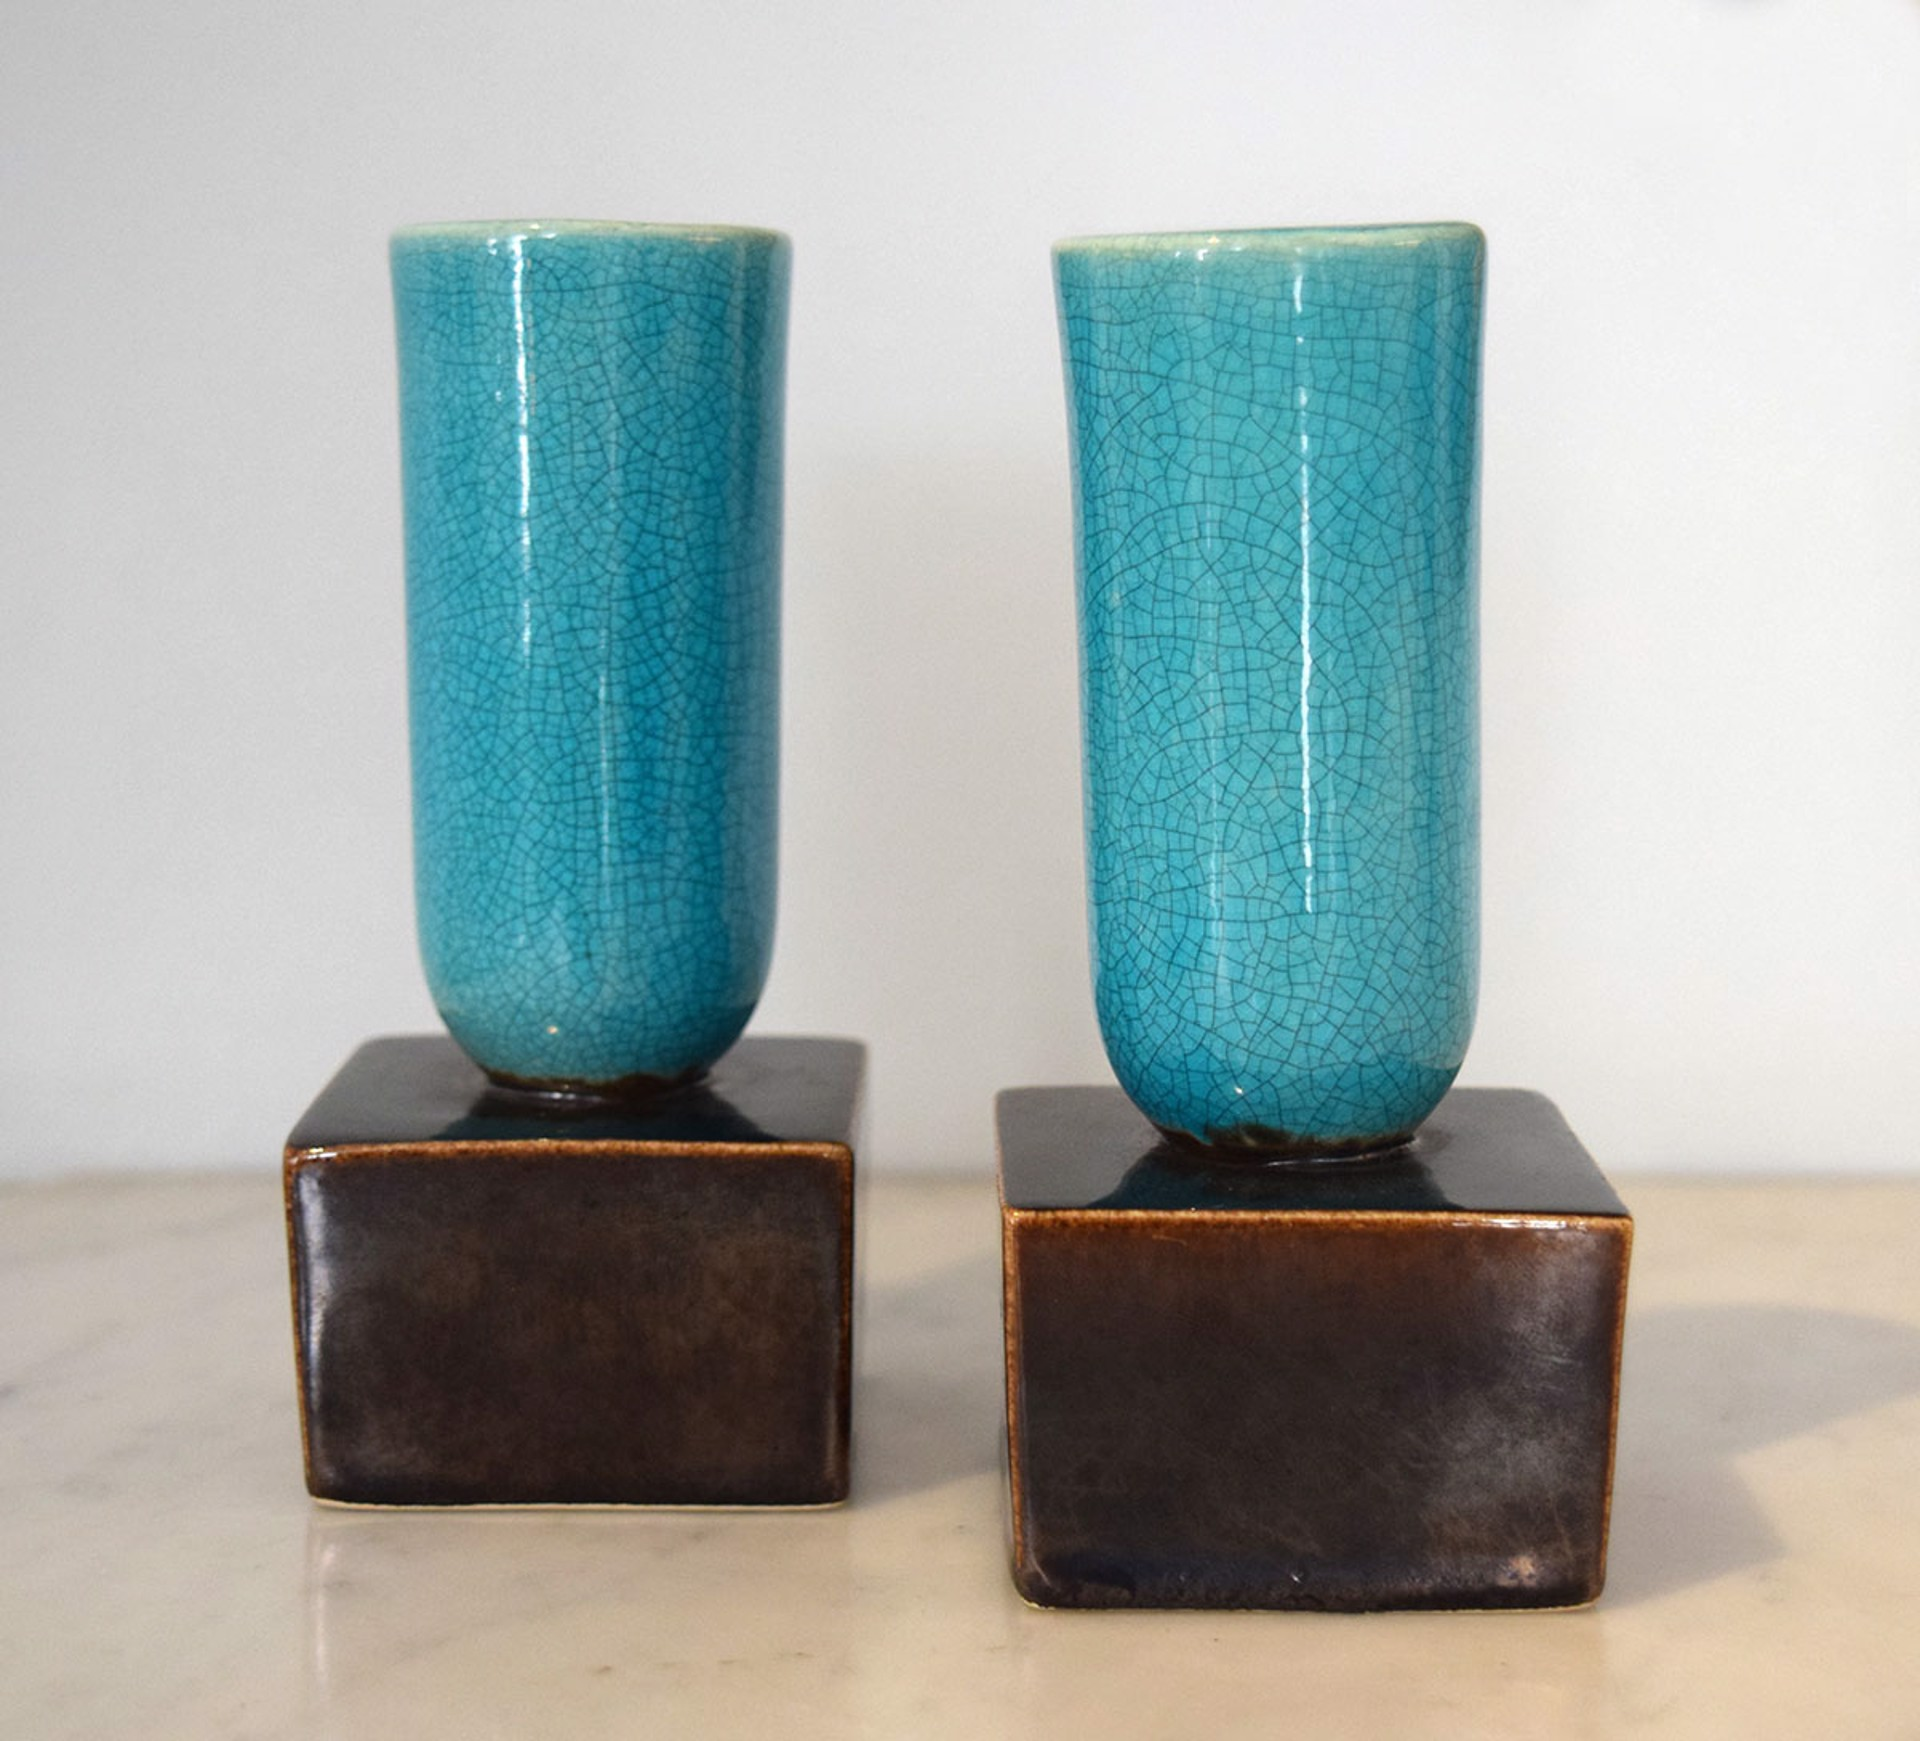 PAIR OF TURQUOISE AND AUBERGINE GLAZED AMERICAN POTTERY CANDLESTICKS